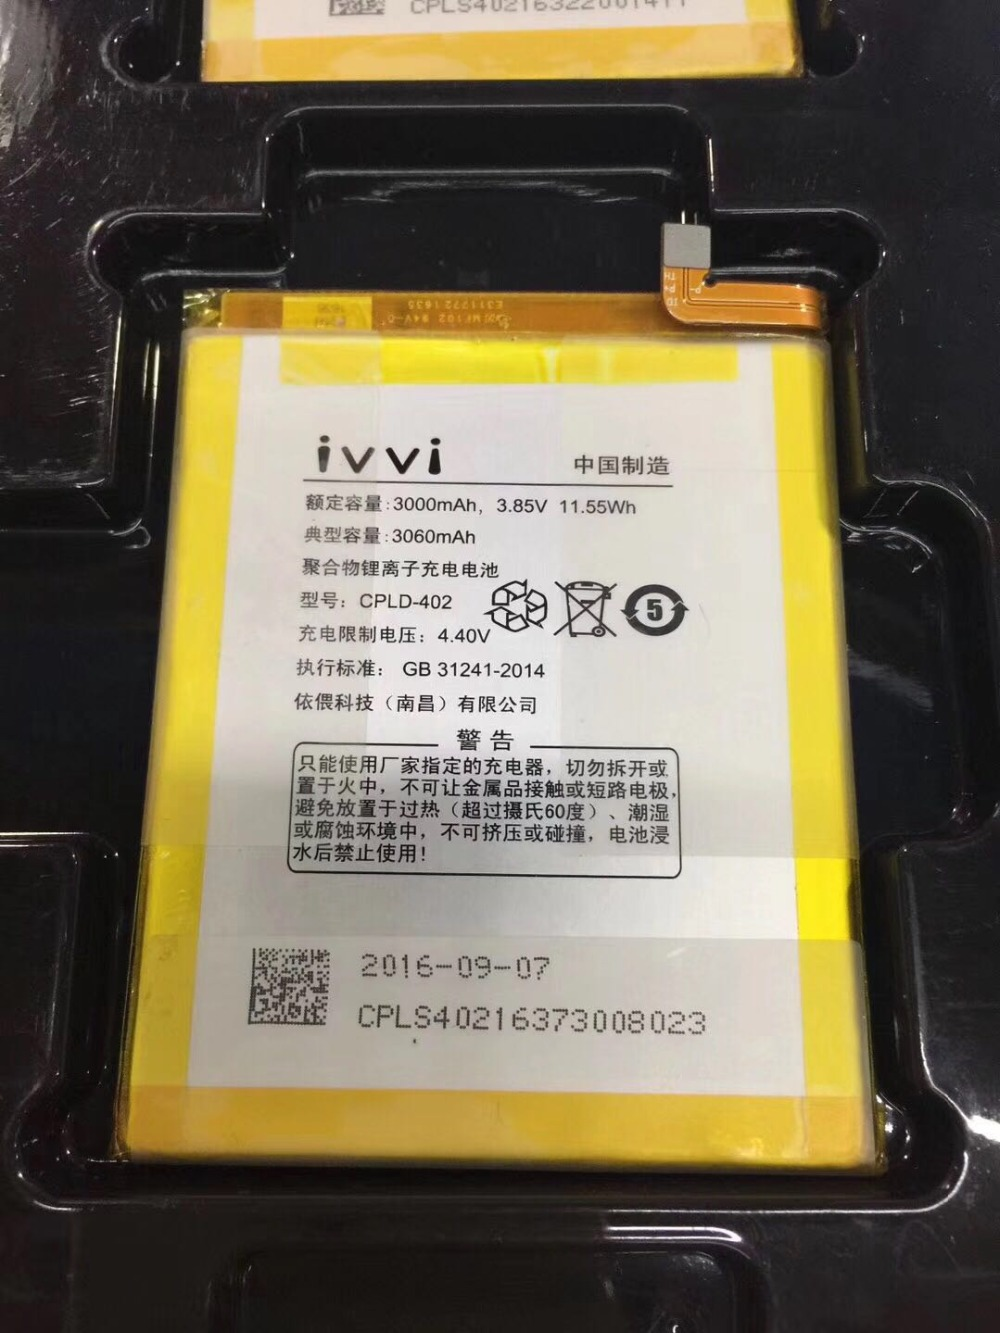 3000mAh CPLD 402 Replacement Battery For Coolpad ivvi K5 ivvi i3P 02 i3Play Naked eye 3D Li ion bateria Li Polymer Batterie in Mobile Phone Batteries from Cellphones Telecommunications